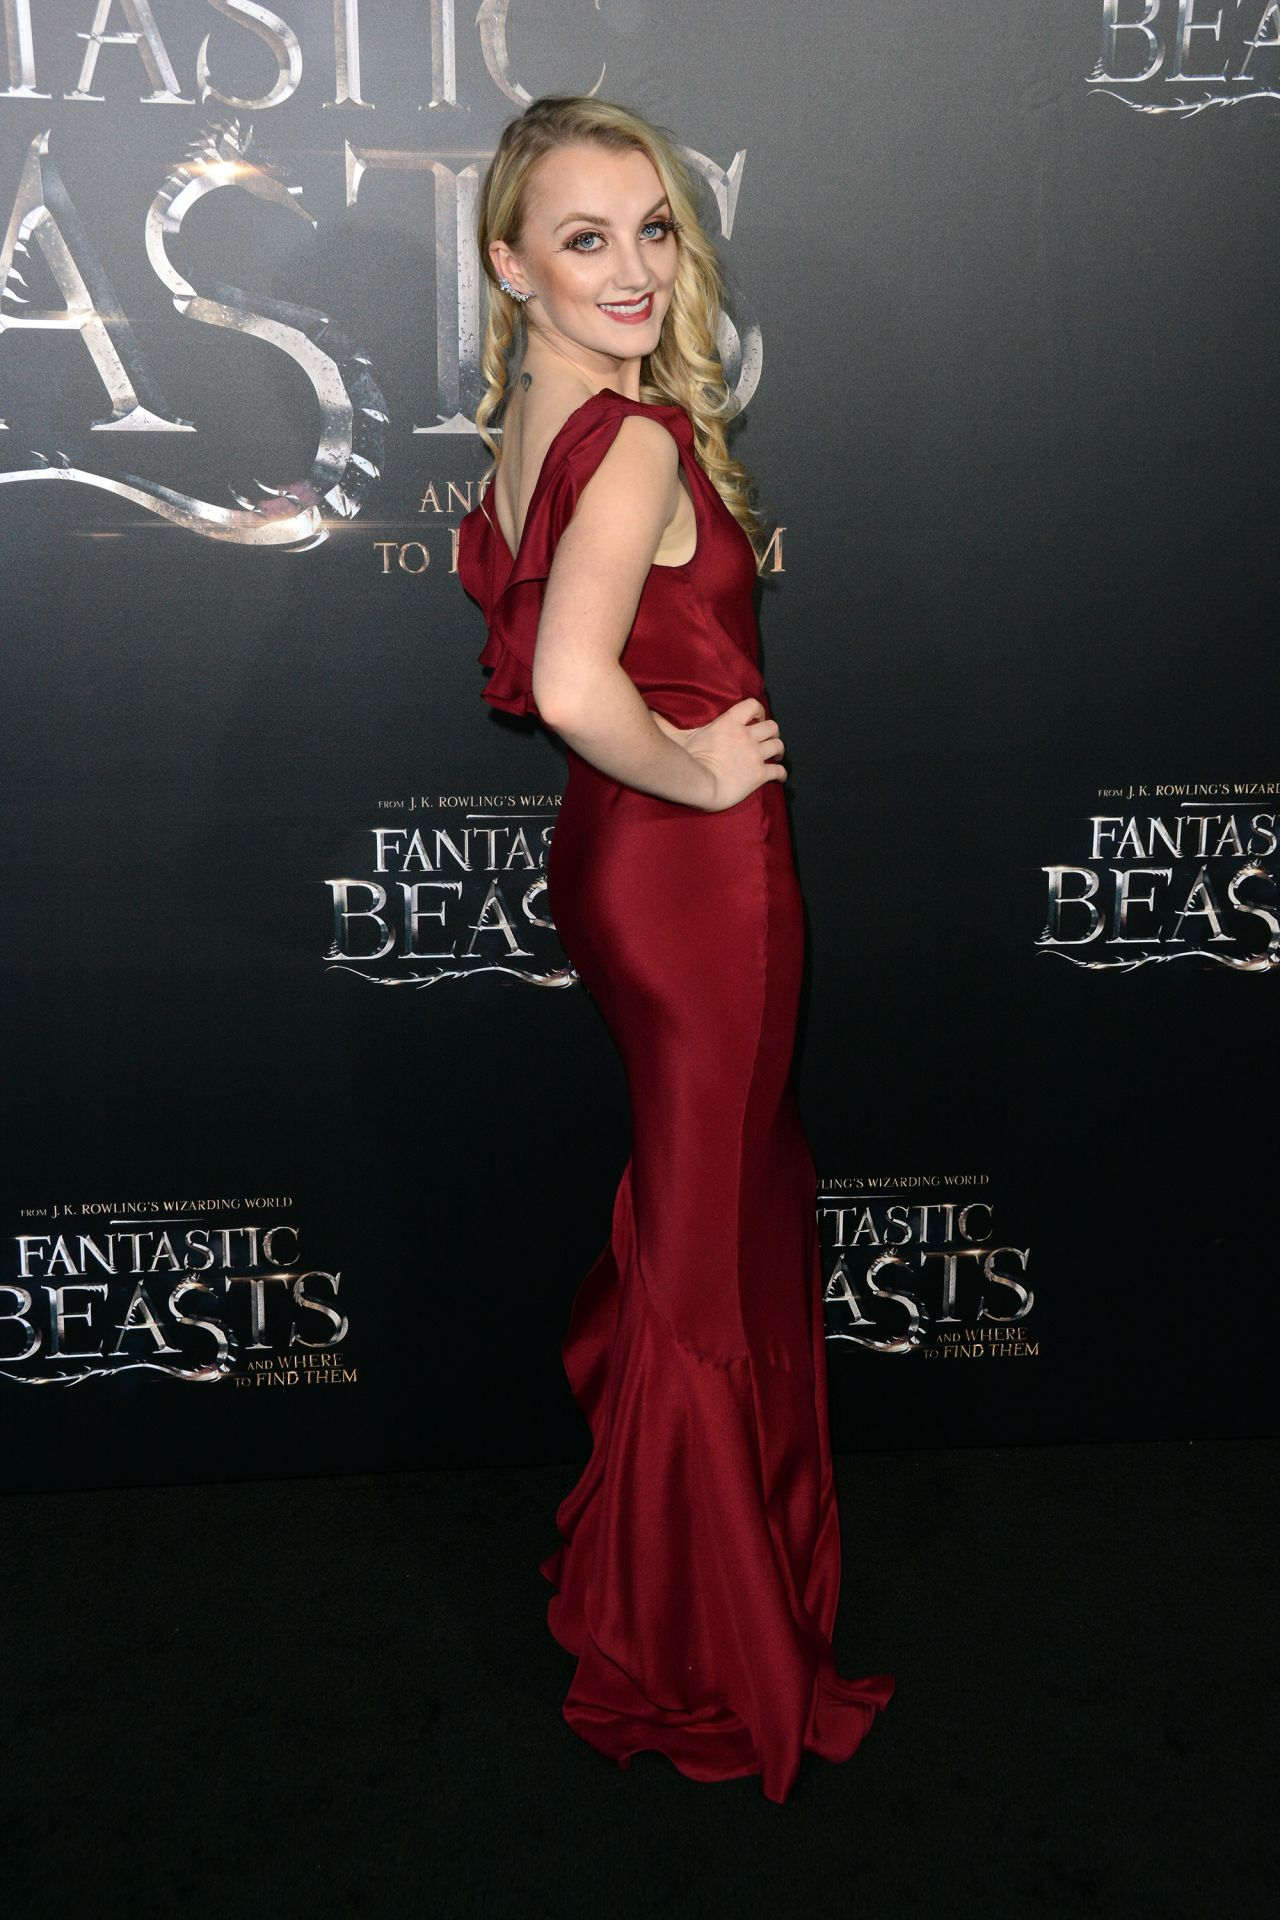 evanna-lynch-fantastic-beasts-and-where-to-find-them-premiere-in-new-york-city-19.jpg